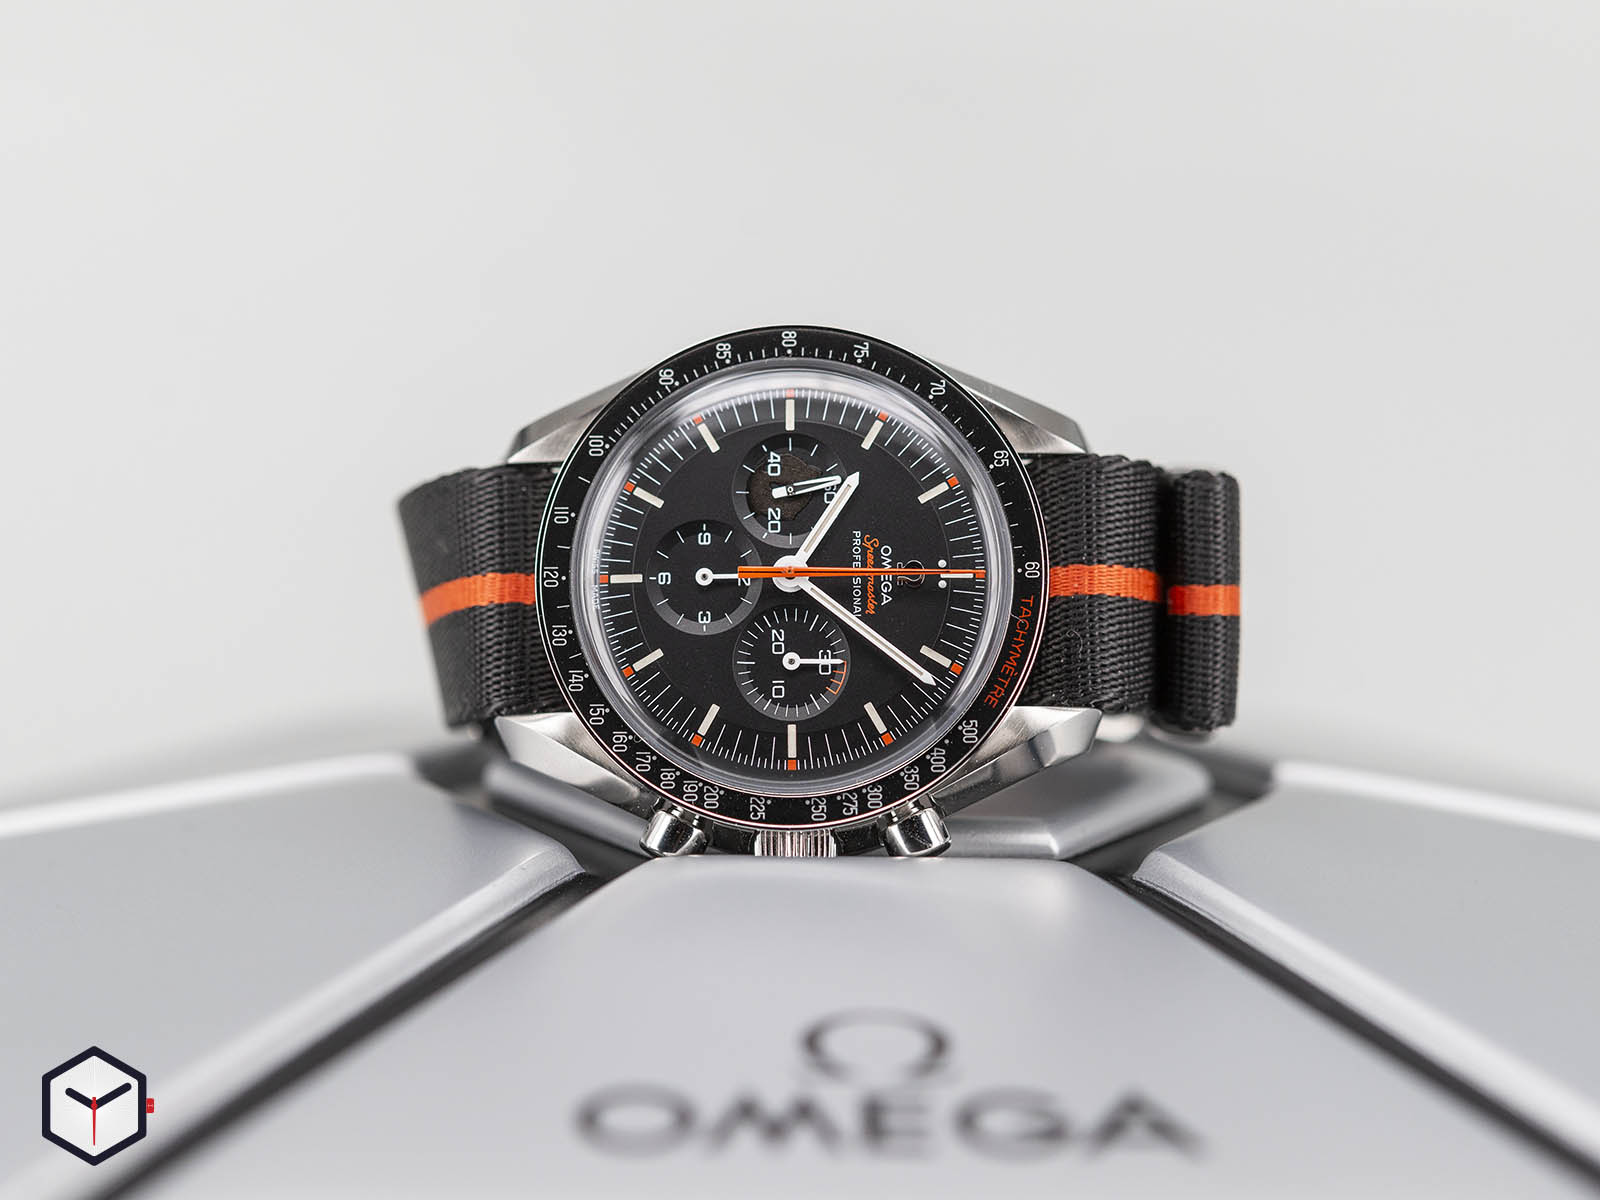 311-12-42-30-01-001-omega-speedmaster-speedy-tuesday-2018-edition-ultraman-2.jpg